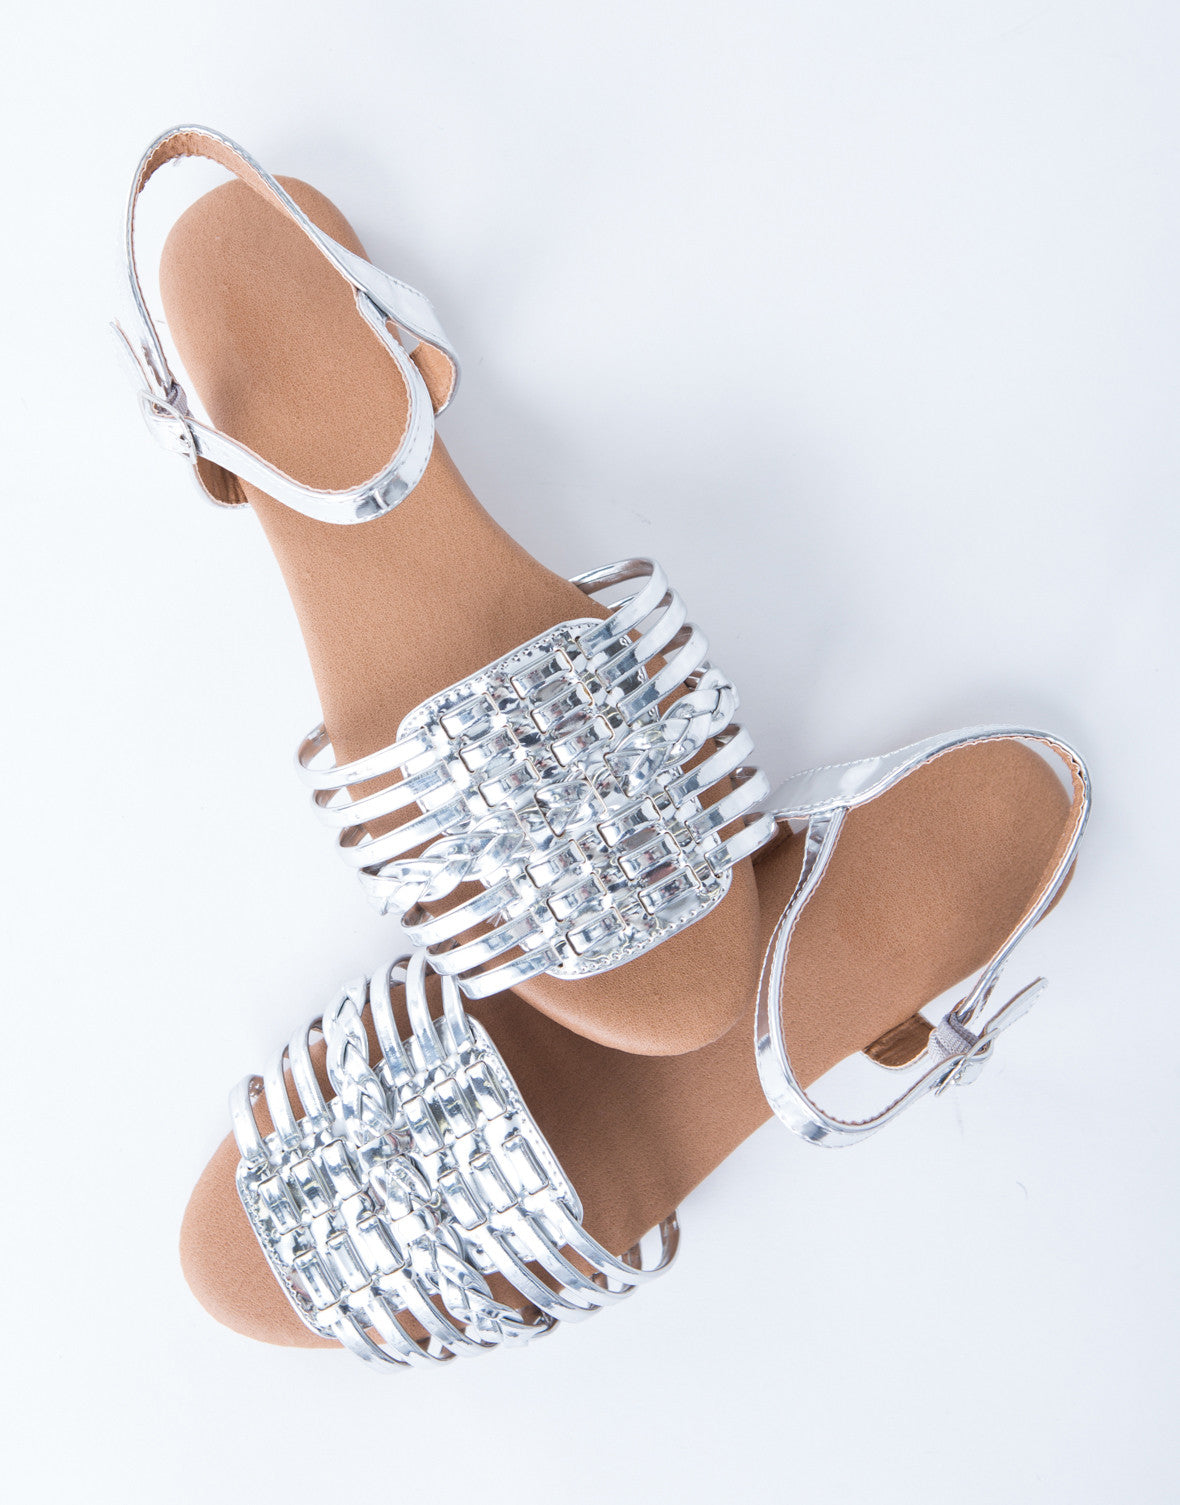 Metallic Ankle Strapped Sandals /></a></p> <p><a href=